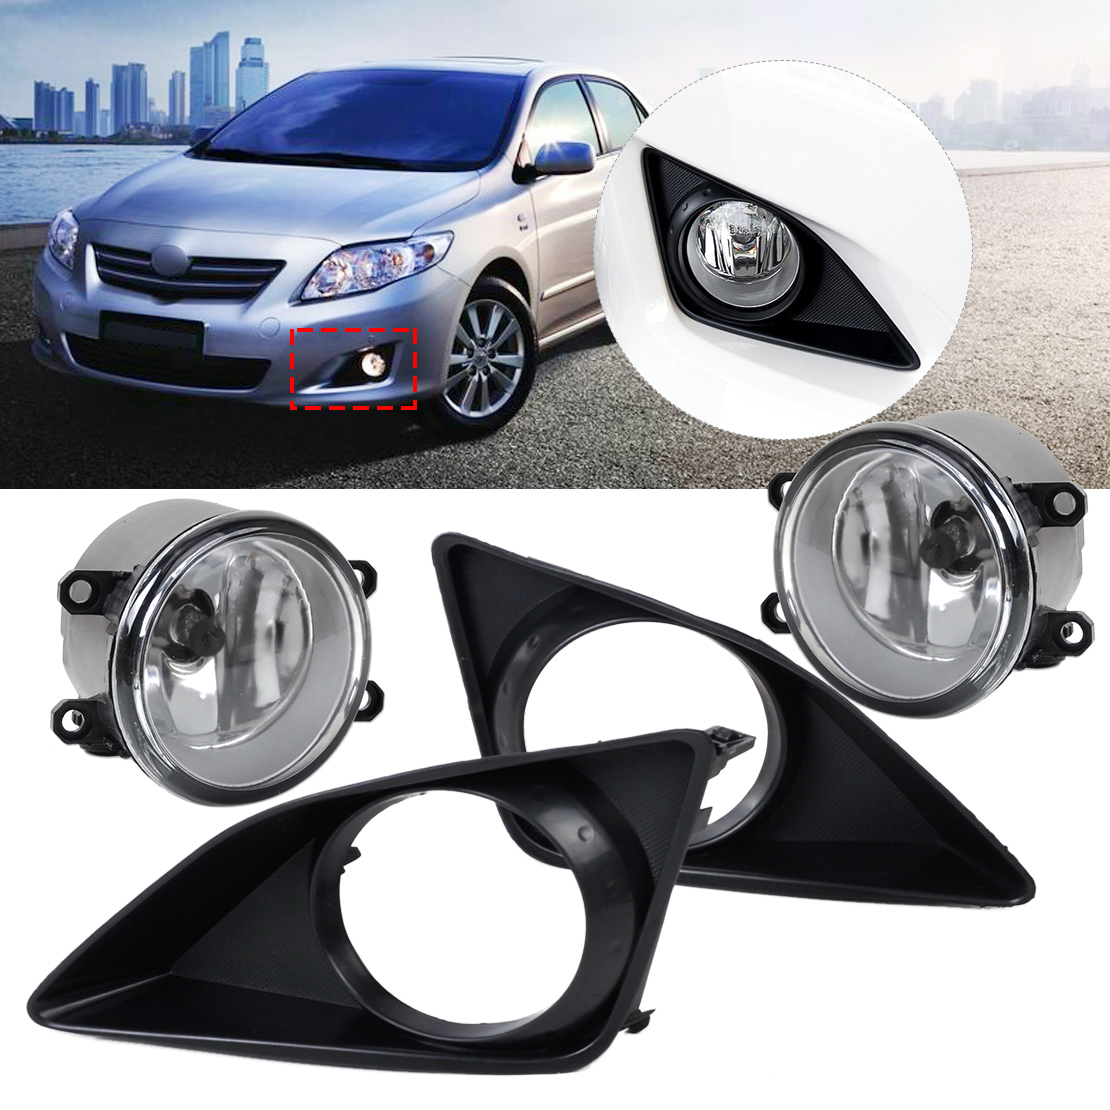 DWCX 81210-06050 / 81210-0D040 2pcs Front Fog Light Lamp + 2pcs Grille Cover Bezel For Toyota Corolla 2007 2008 2009 2010 dwcx 81210 06050 81210 0d040 2pcs front fog light lamp 2pcs grille cover bezel for toyota corolla 2007 2008 2009 2010